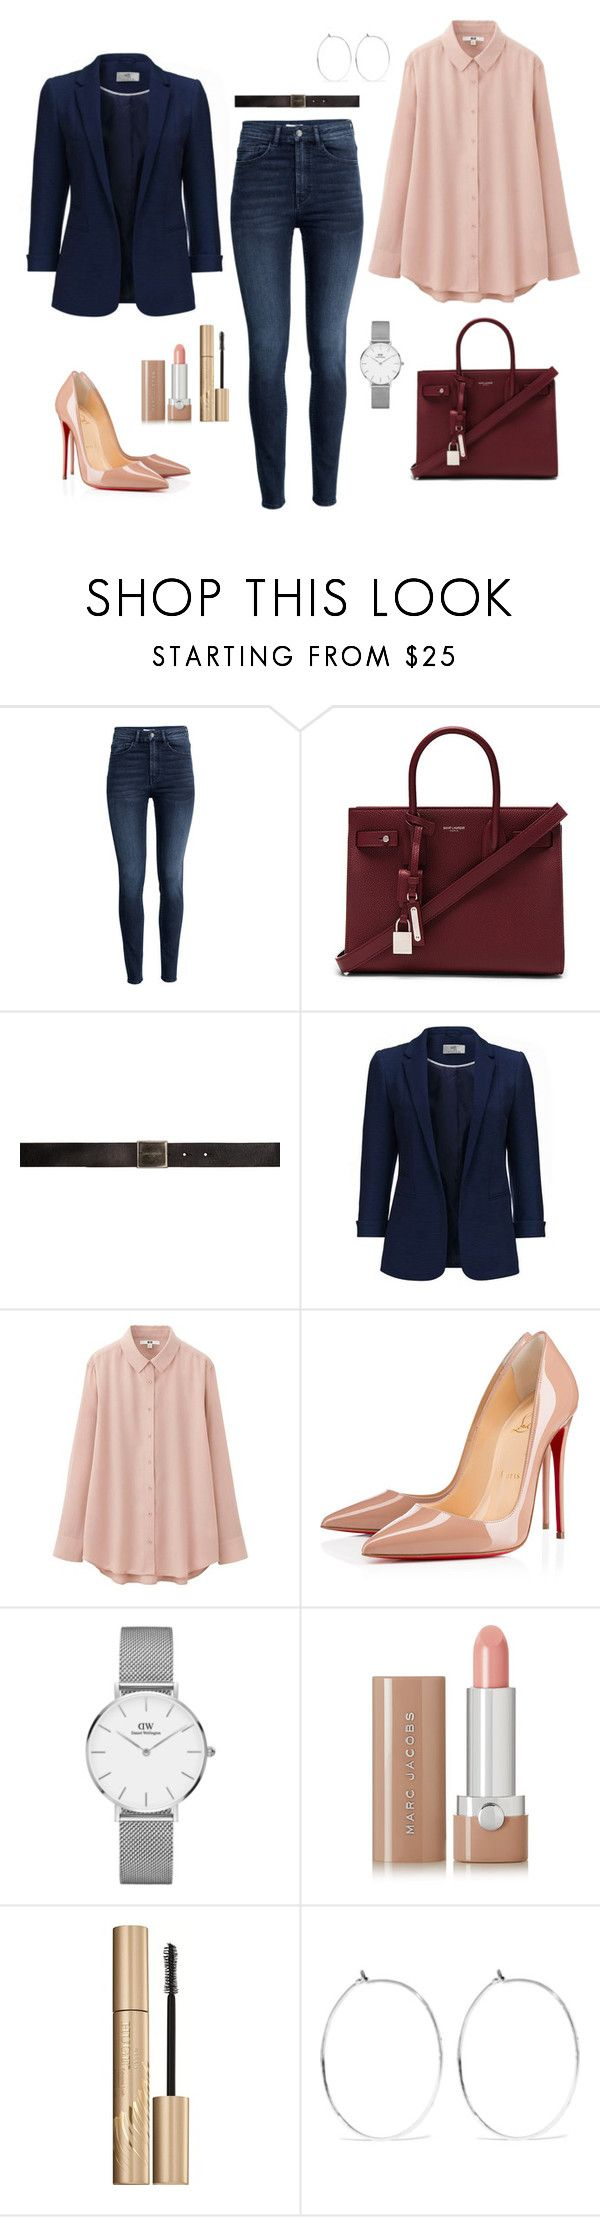 """Untitled #352"" by bajka2468 ❤ liked on Polyvore featuring H&M, Yves Saint Laurent, Uniqlo, Christian Louboutin, Daniel Wellington, Marc Jacobs, Stila and Catbird"